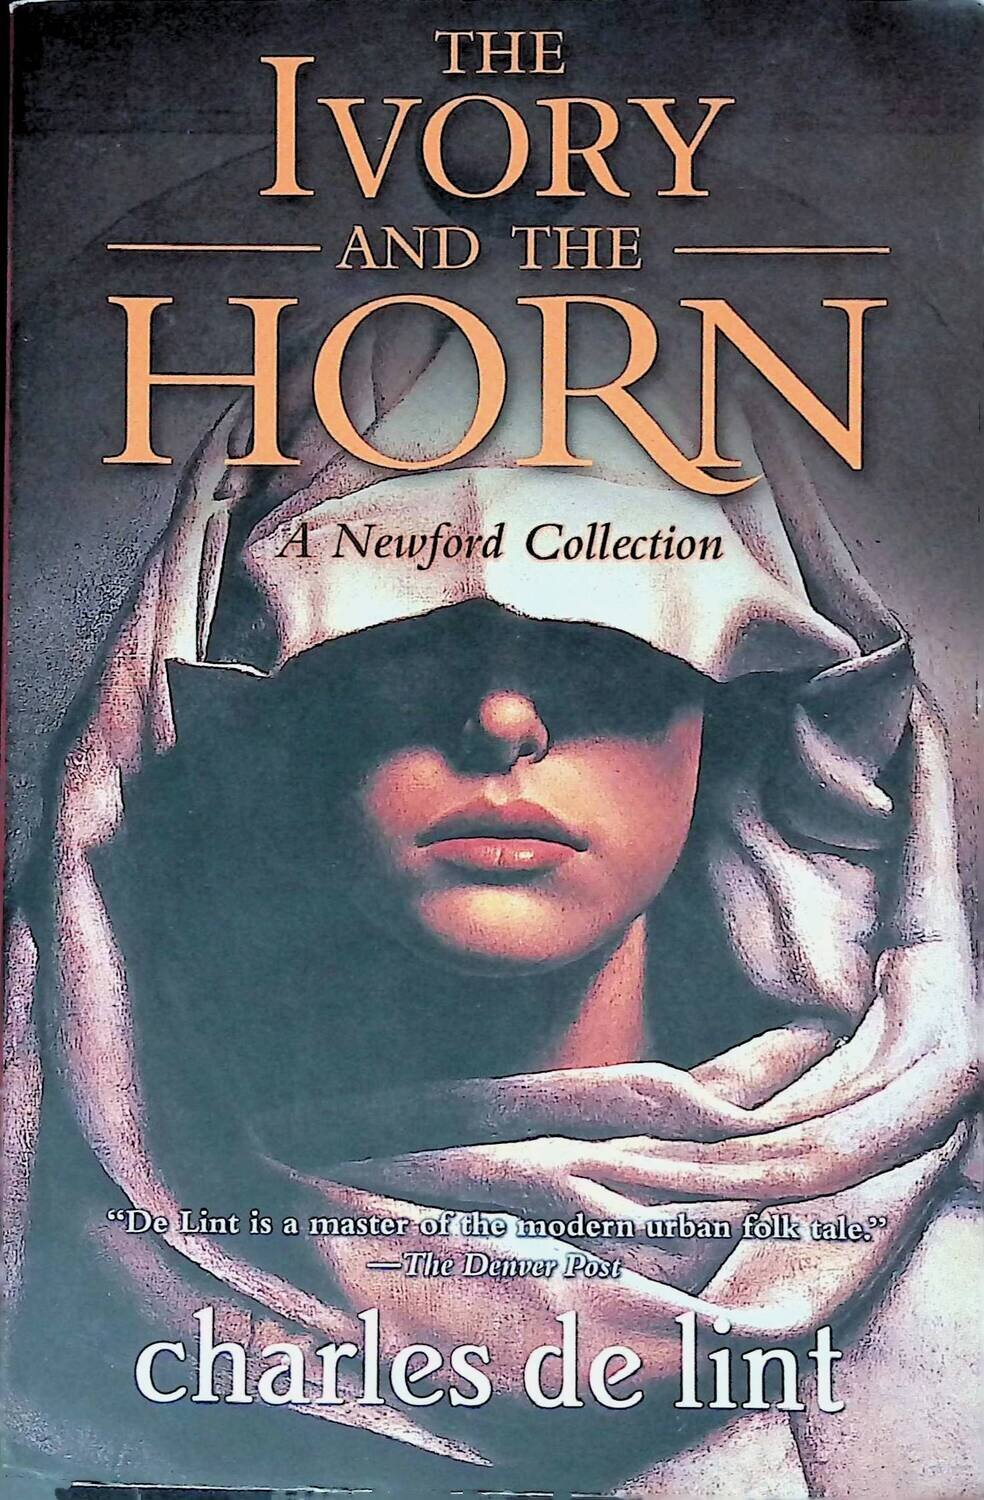 The Ivory and the Horn; Charles de Lint